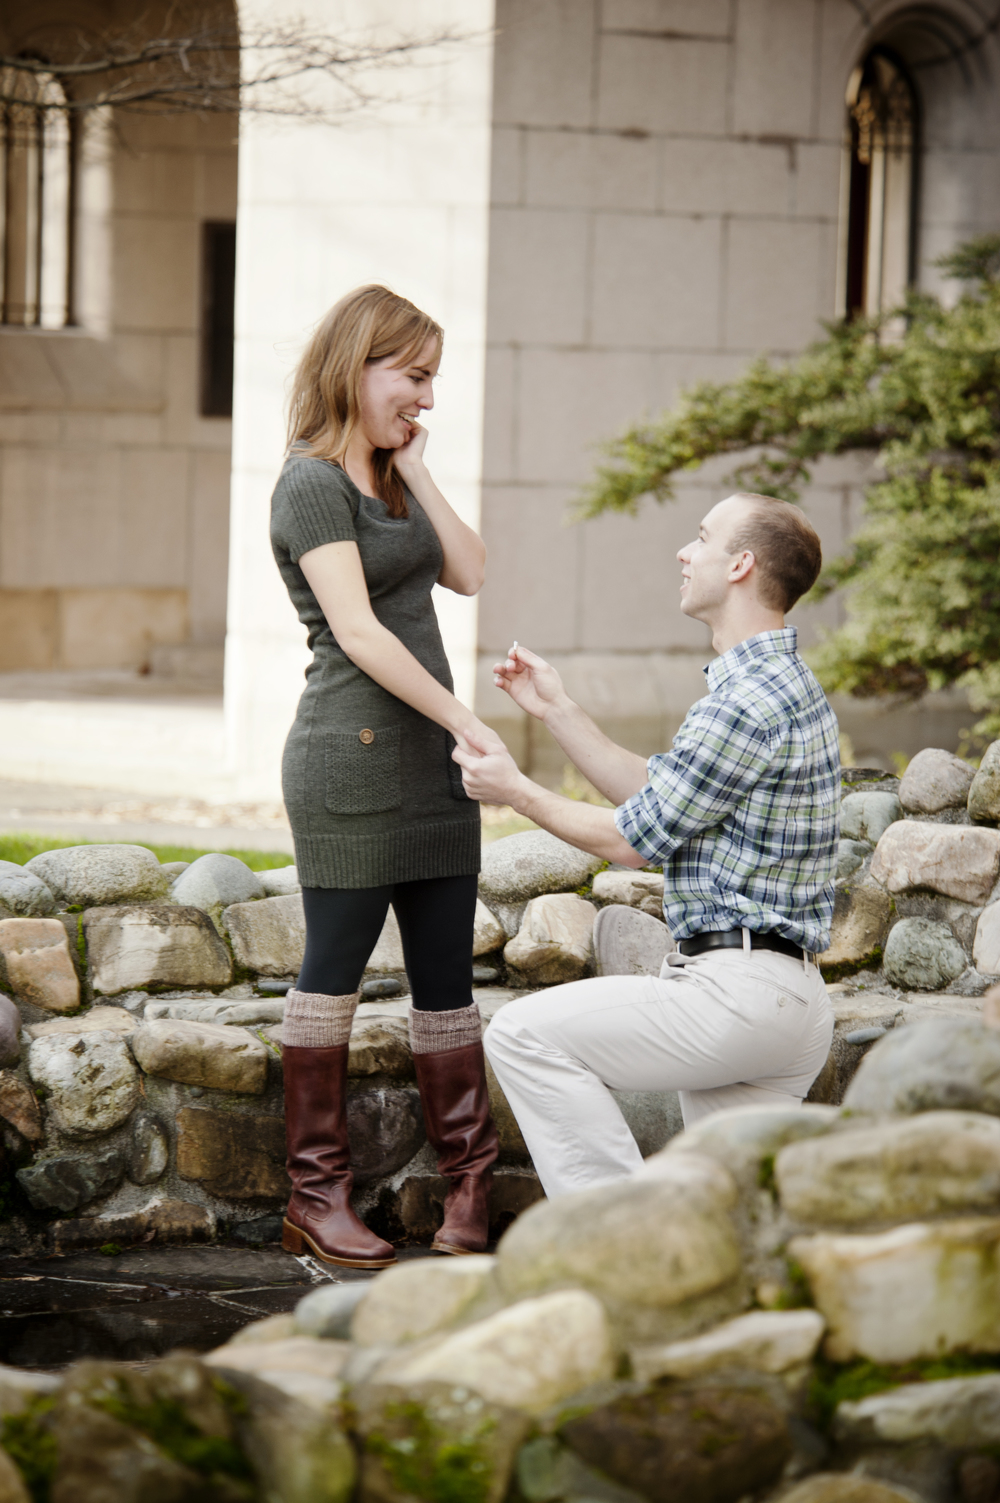 Kelsey Lane Photography, Seattle Wedding Photographer, Engagement, Proposal_Travis + Amy 01.jpg